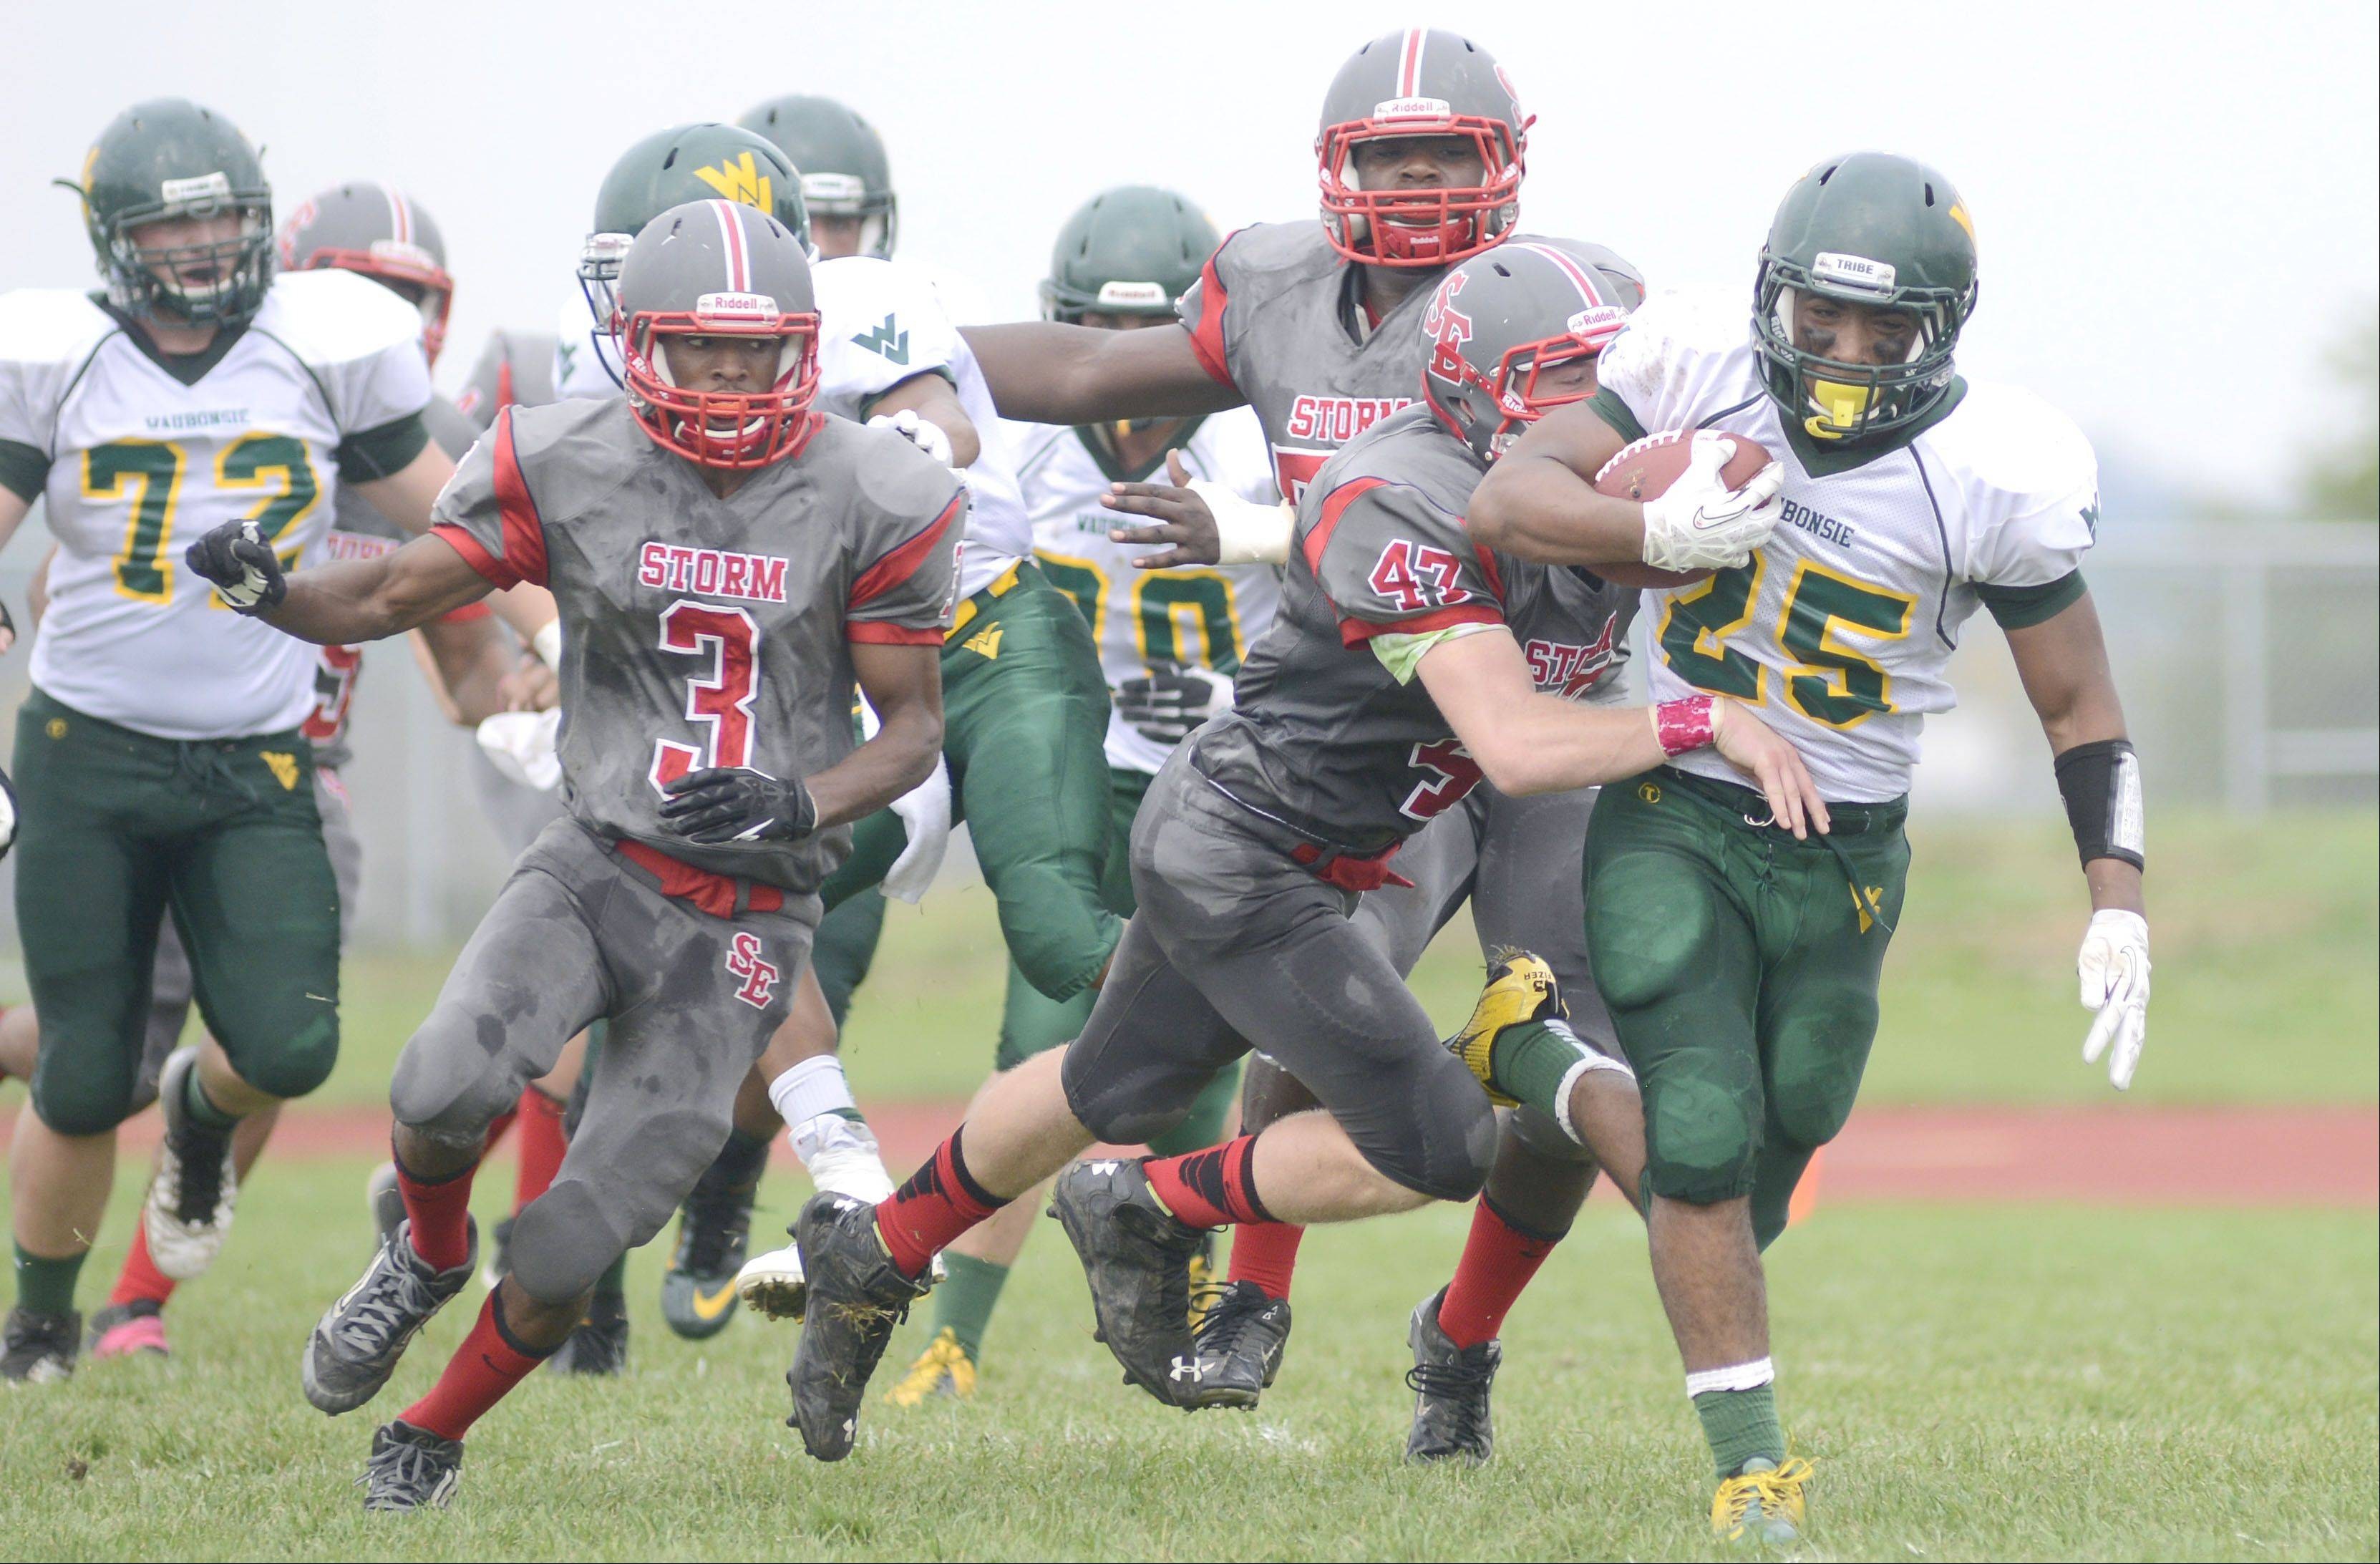 Waubonsie Valley's Jon Fizer shakes off South Elgin's Justin Bryski in the first quarter on Saturday, October 5.